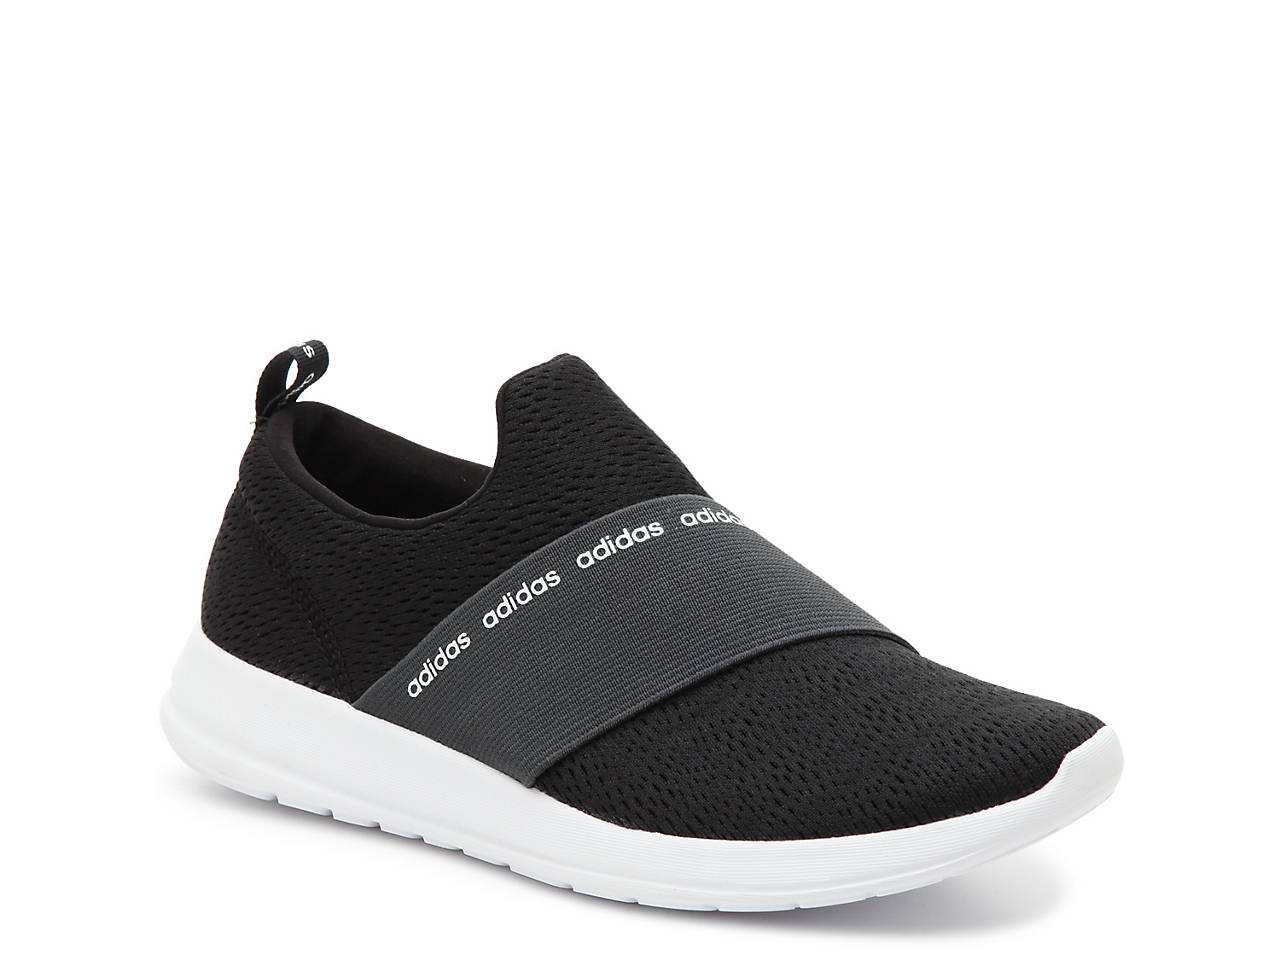 Refline Slip On Sneaker Women's